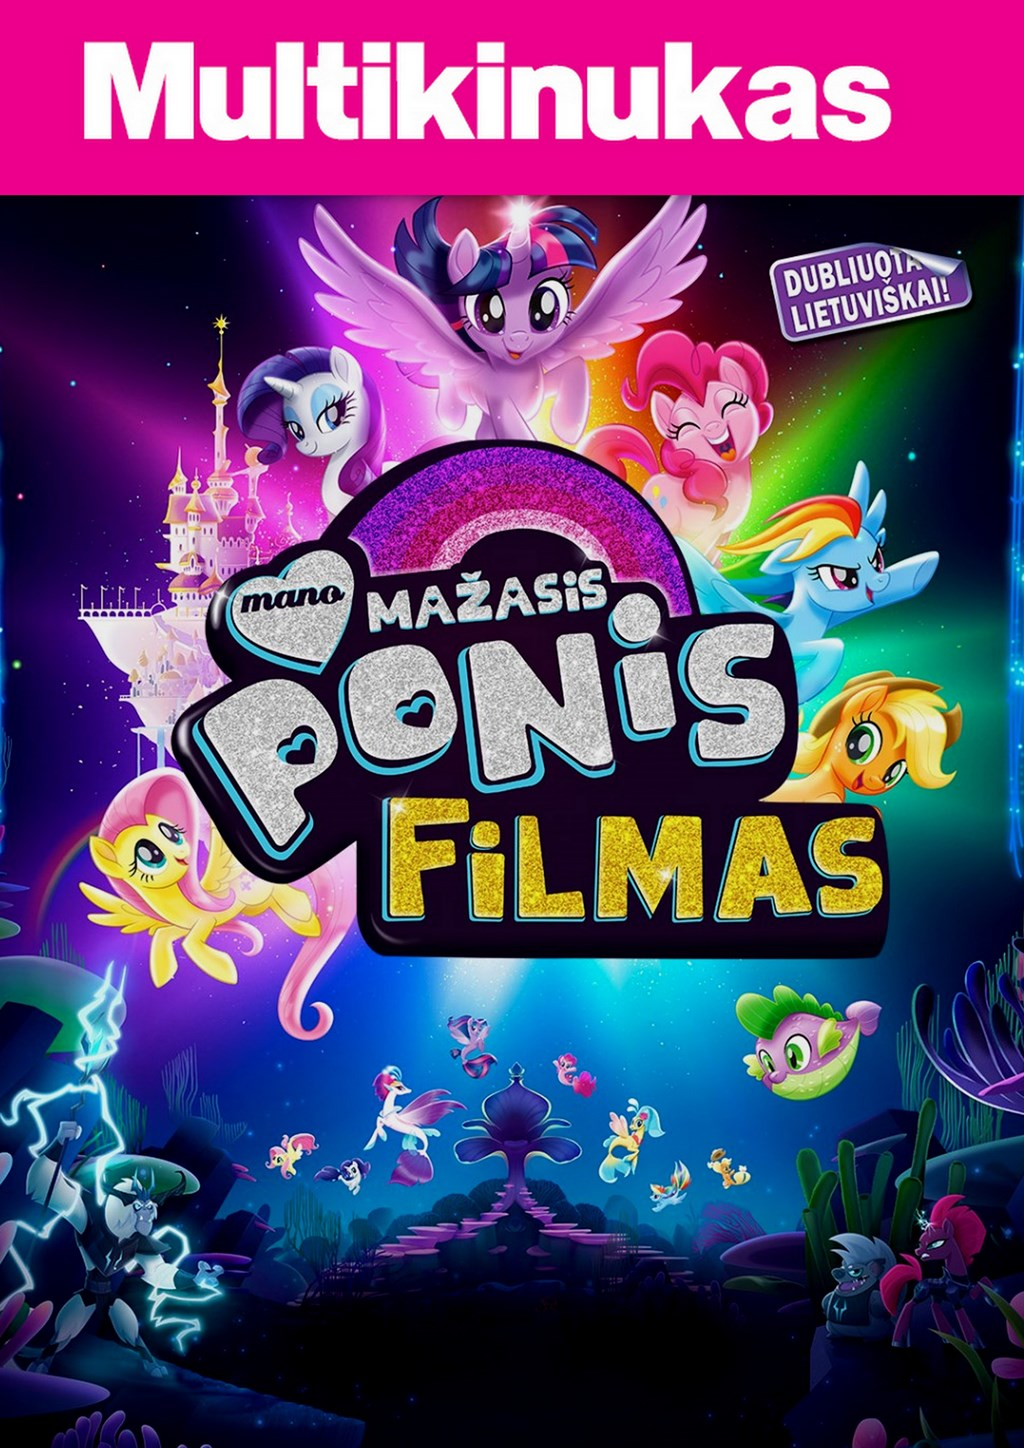 Multikinukas: Mano mažasis ponis (MY LITTLE PONY)